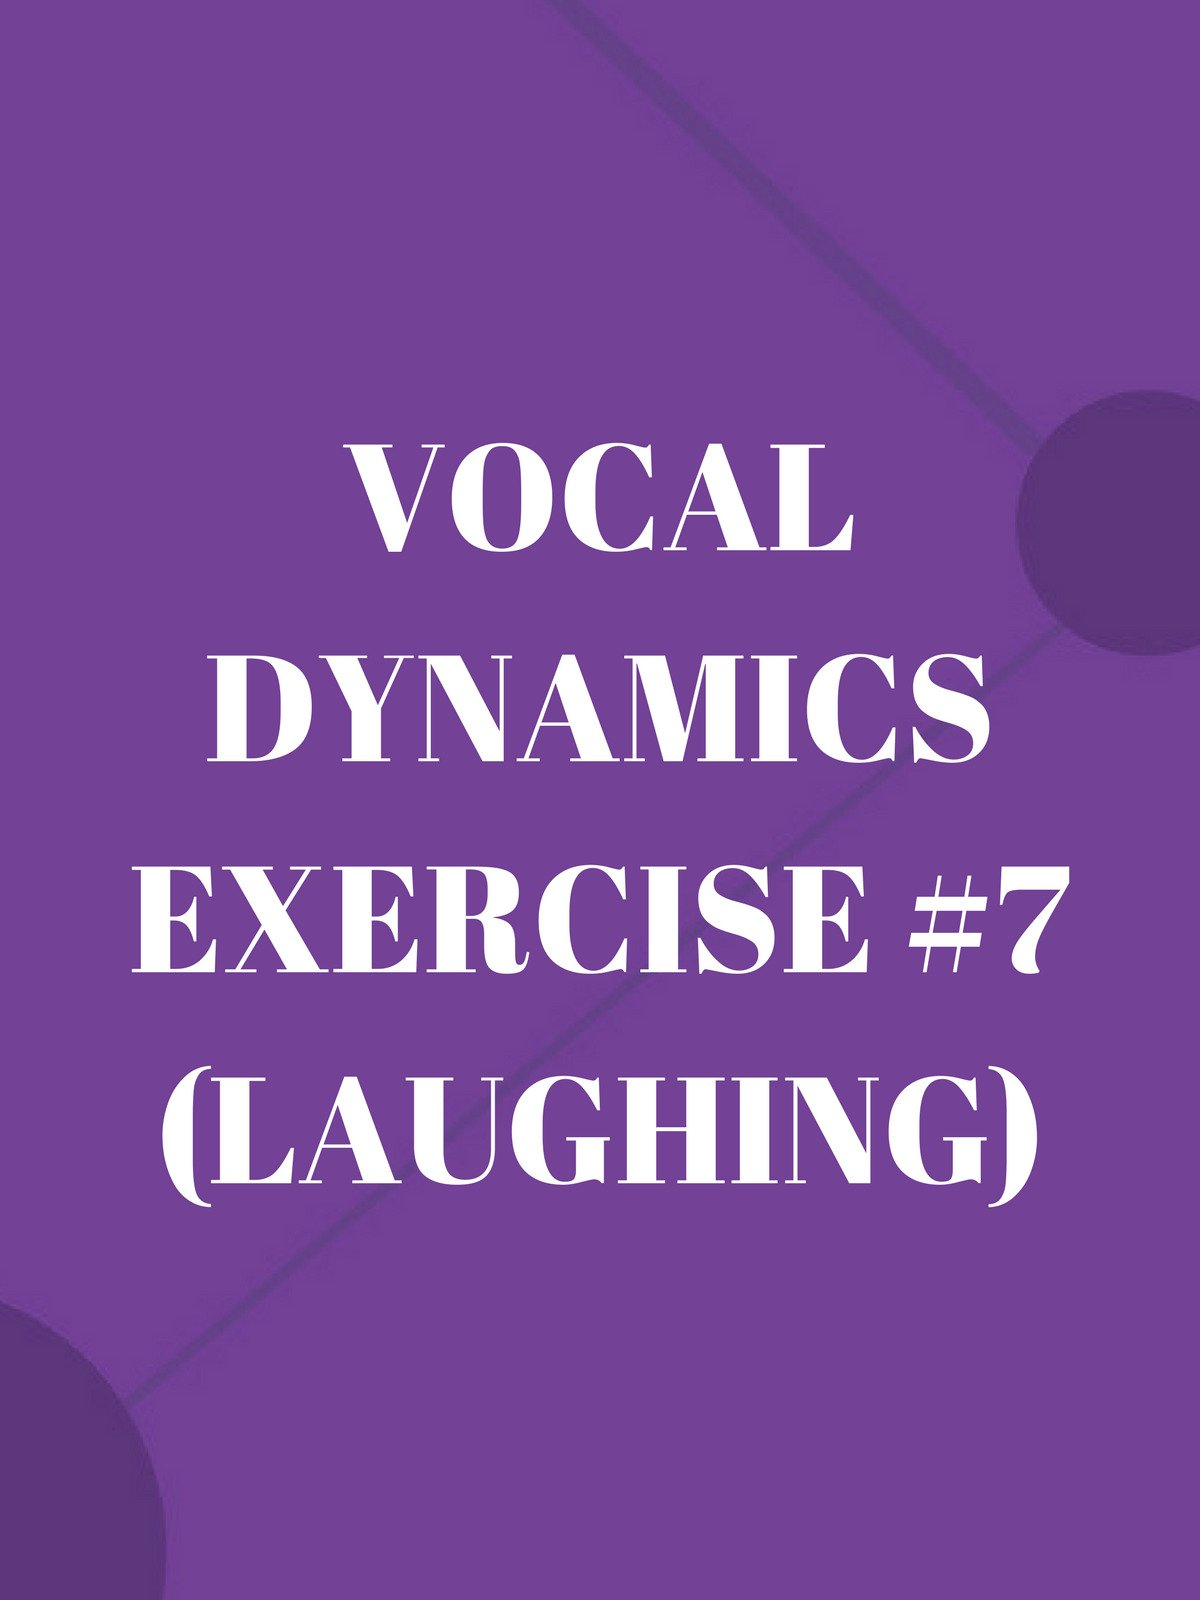 Vocal Dynamics Exercise #7 (Laughing)